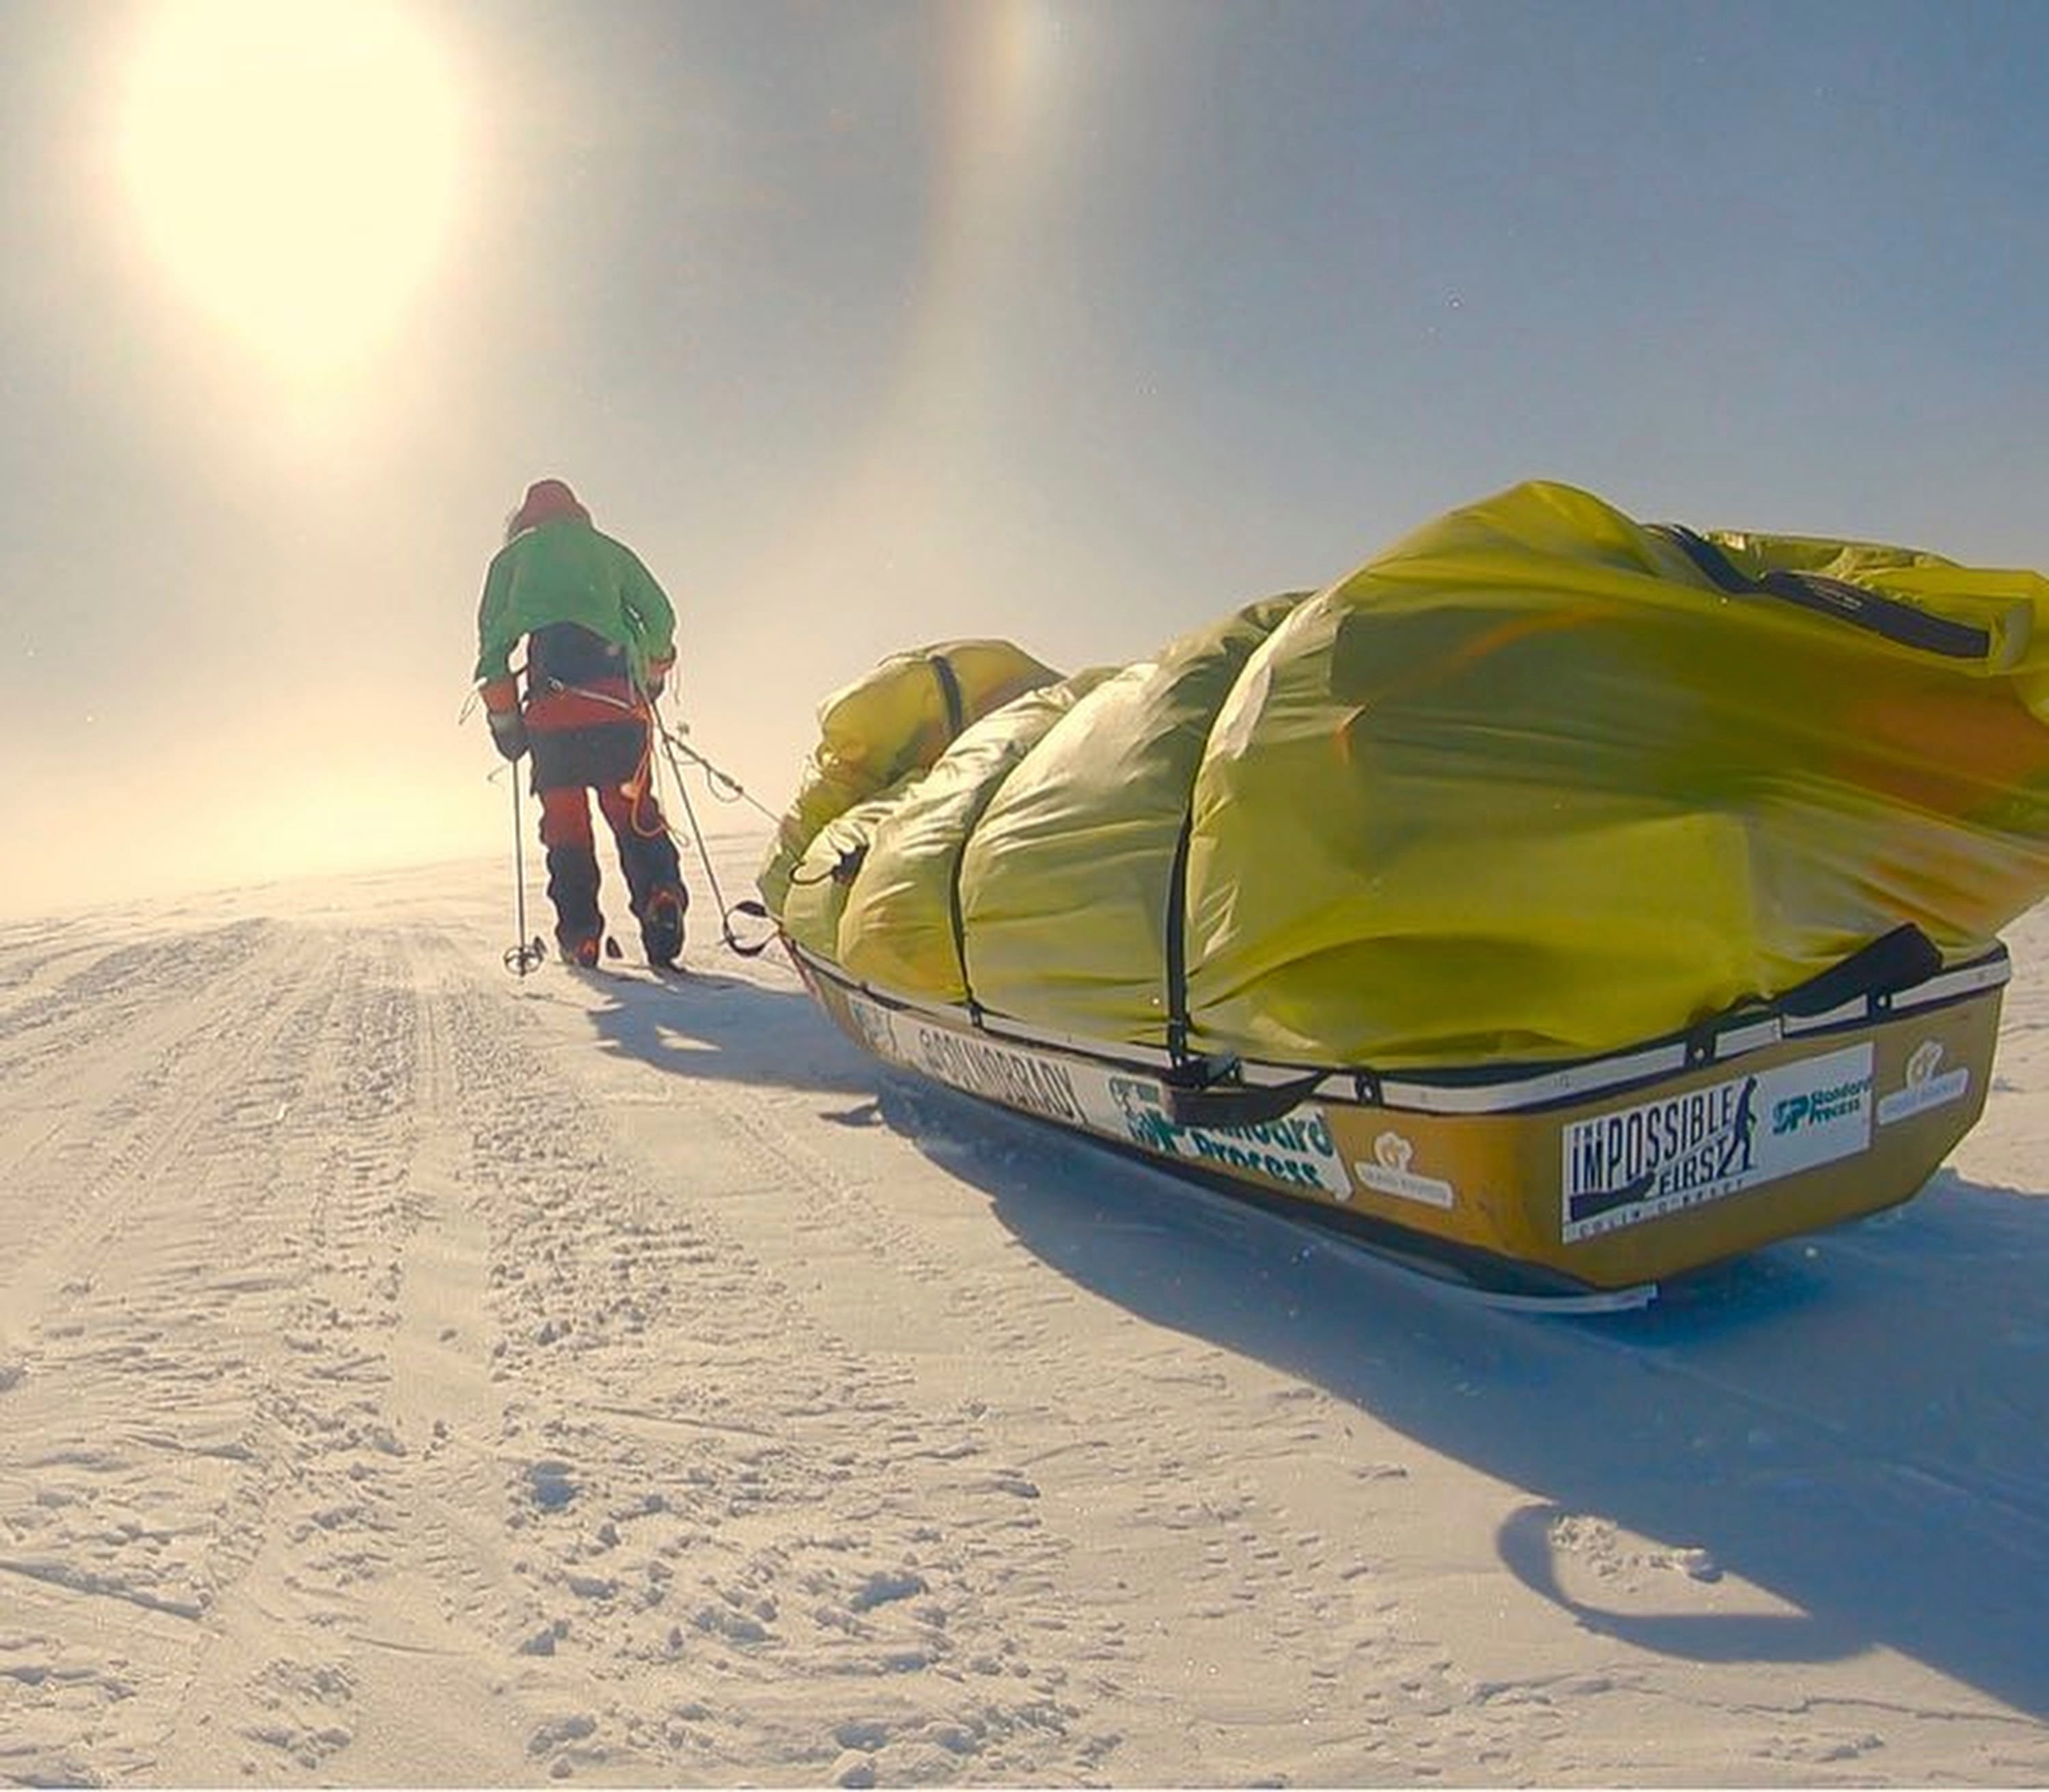 'I did it!': Colin O'Brady completes 'The Impossible First' across Antarctica